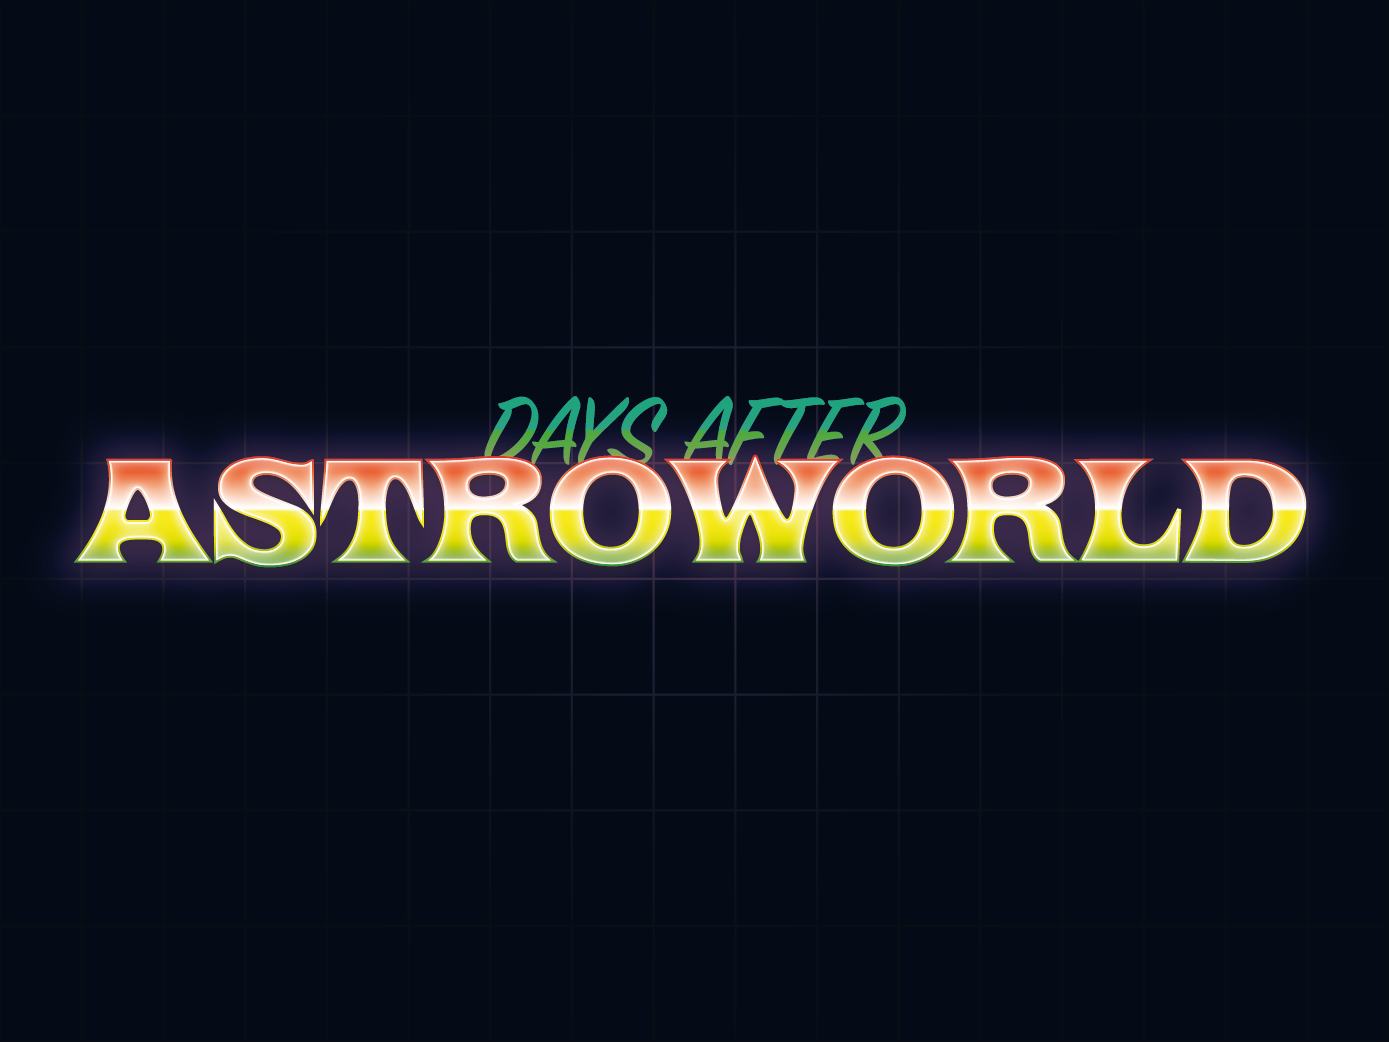 Days After Astroworld by Jack Colchester on Dribbble.